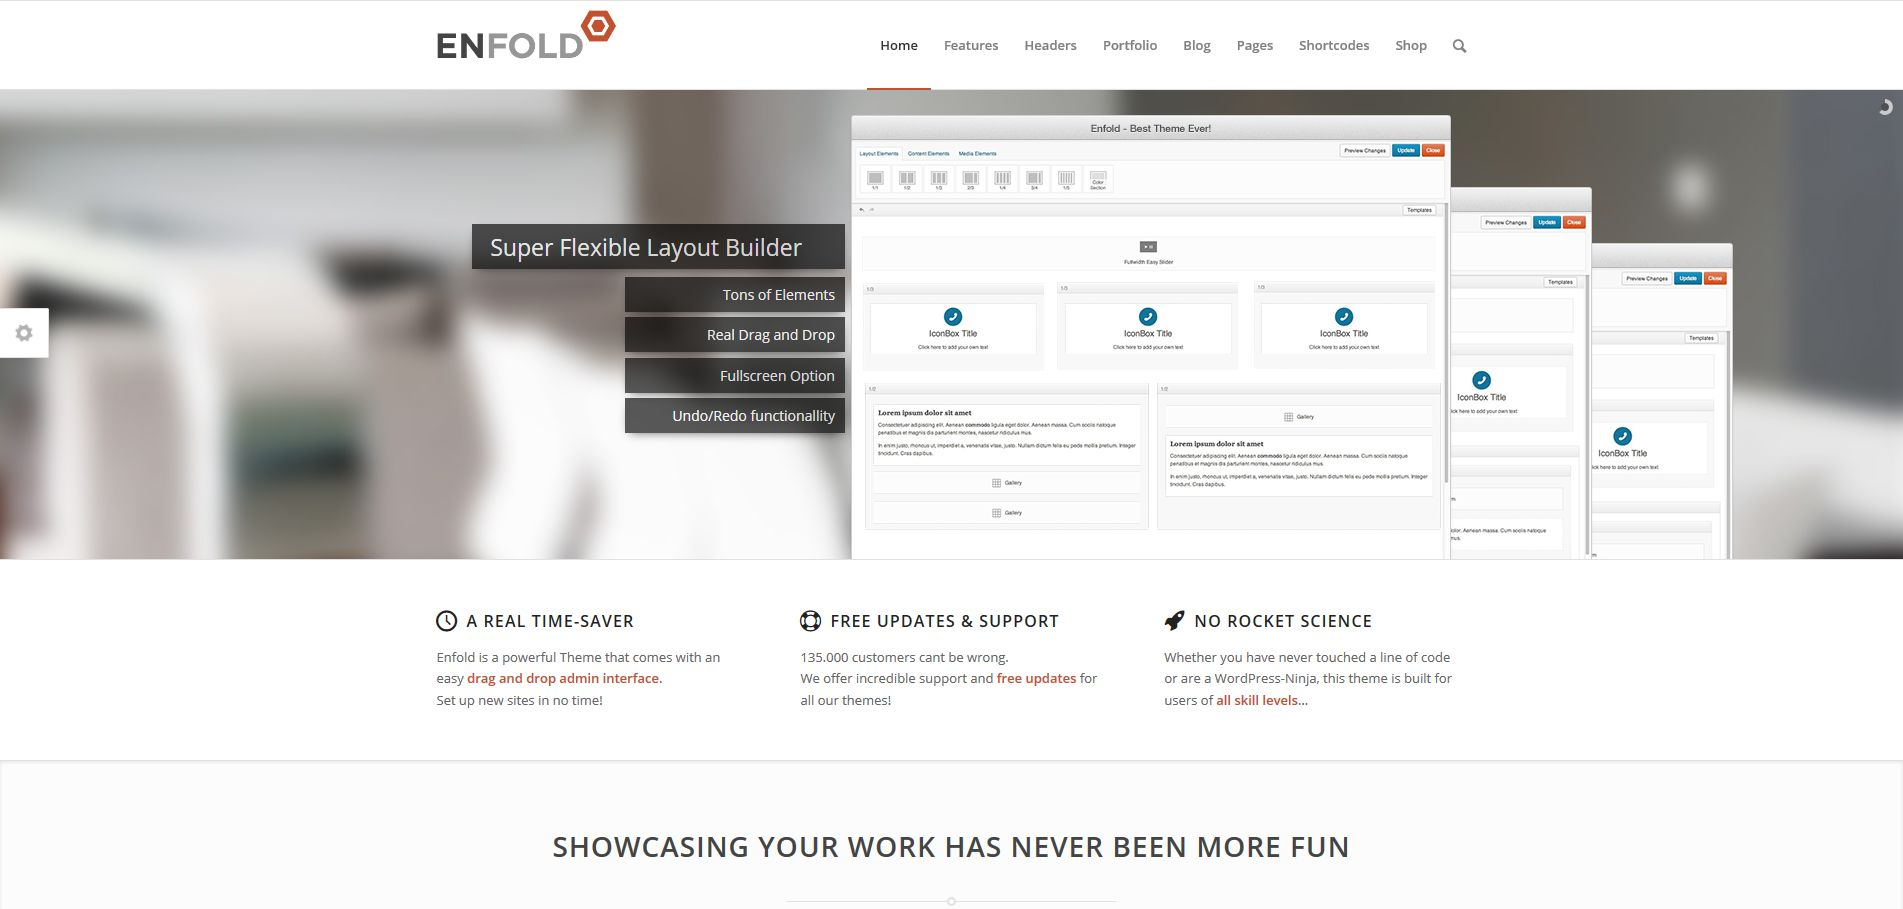 temas-wordpress-negocios-enfold